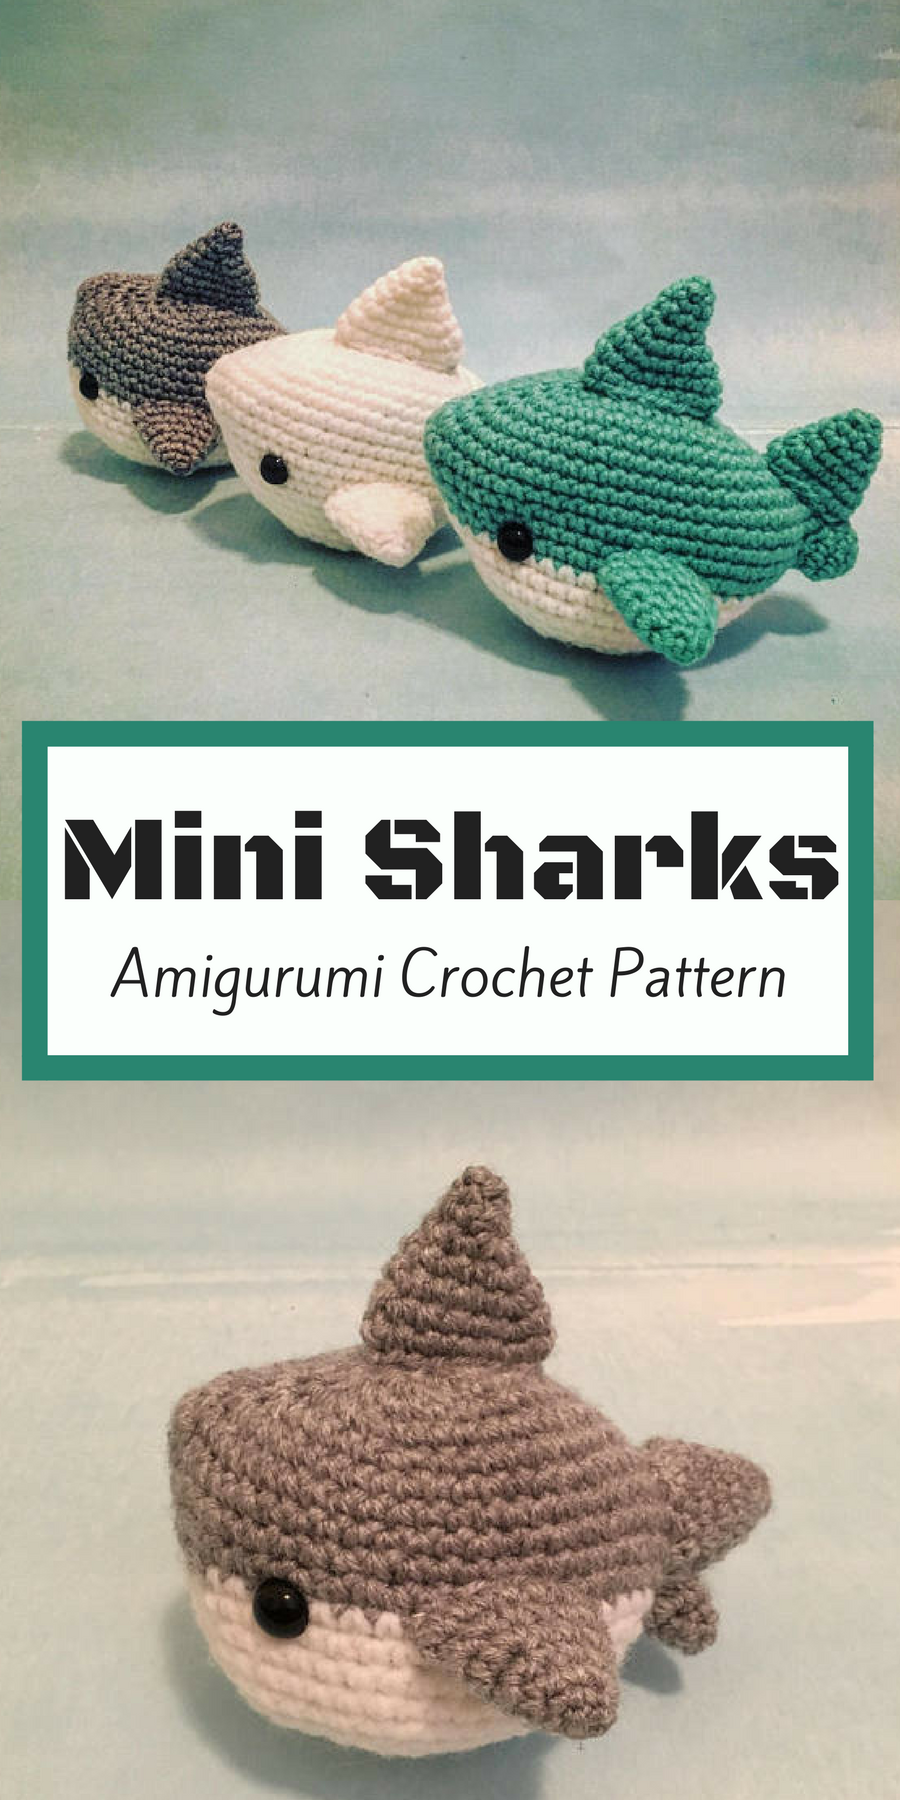 3c028c7813a Mini sharks amigurumi crochet pattern. These little guys are so cool!! So  cute and quick to whip up these little sharkies.  ad  amigurumi   crochetpattern   ...